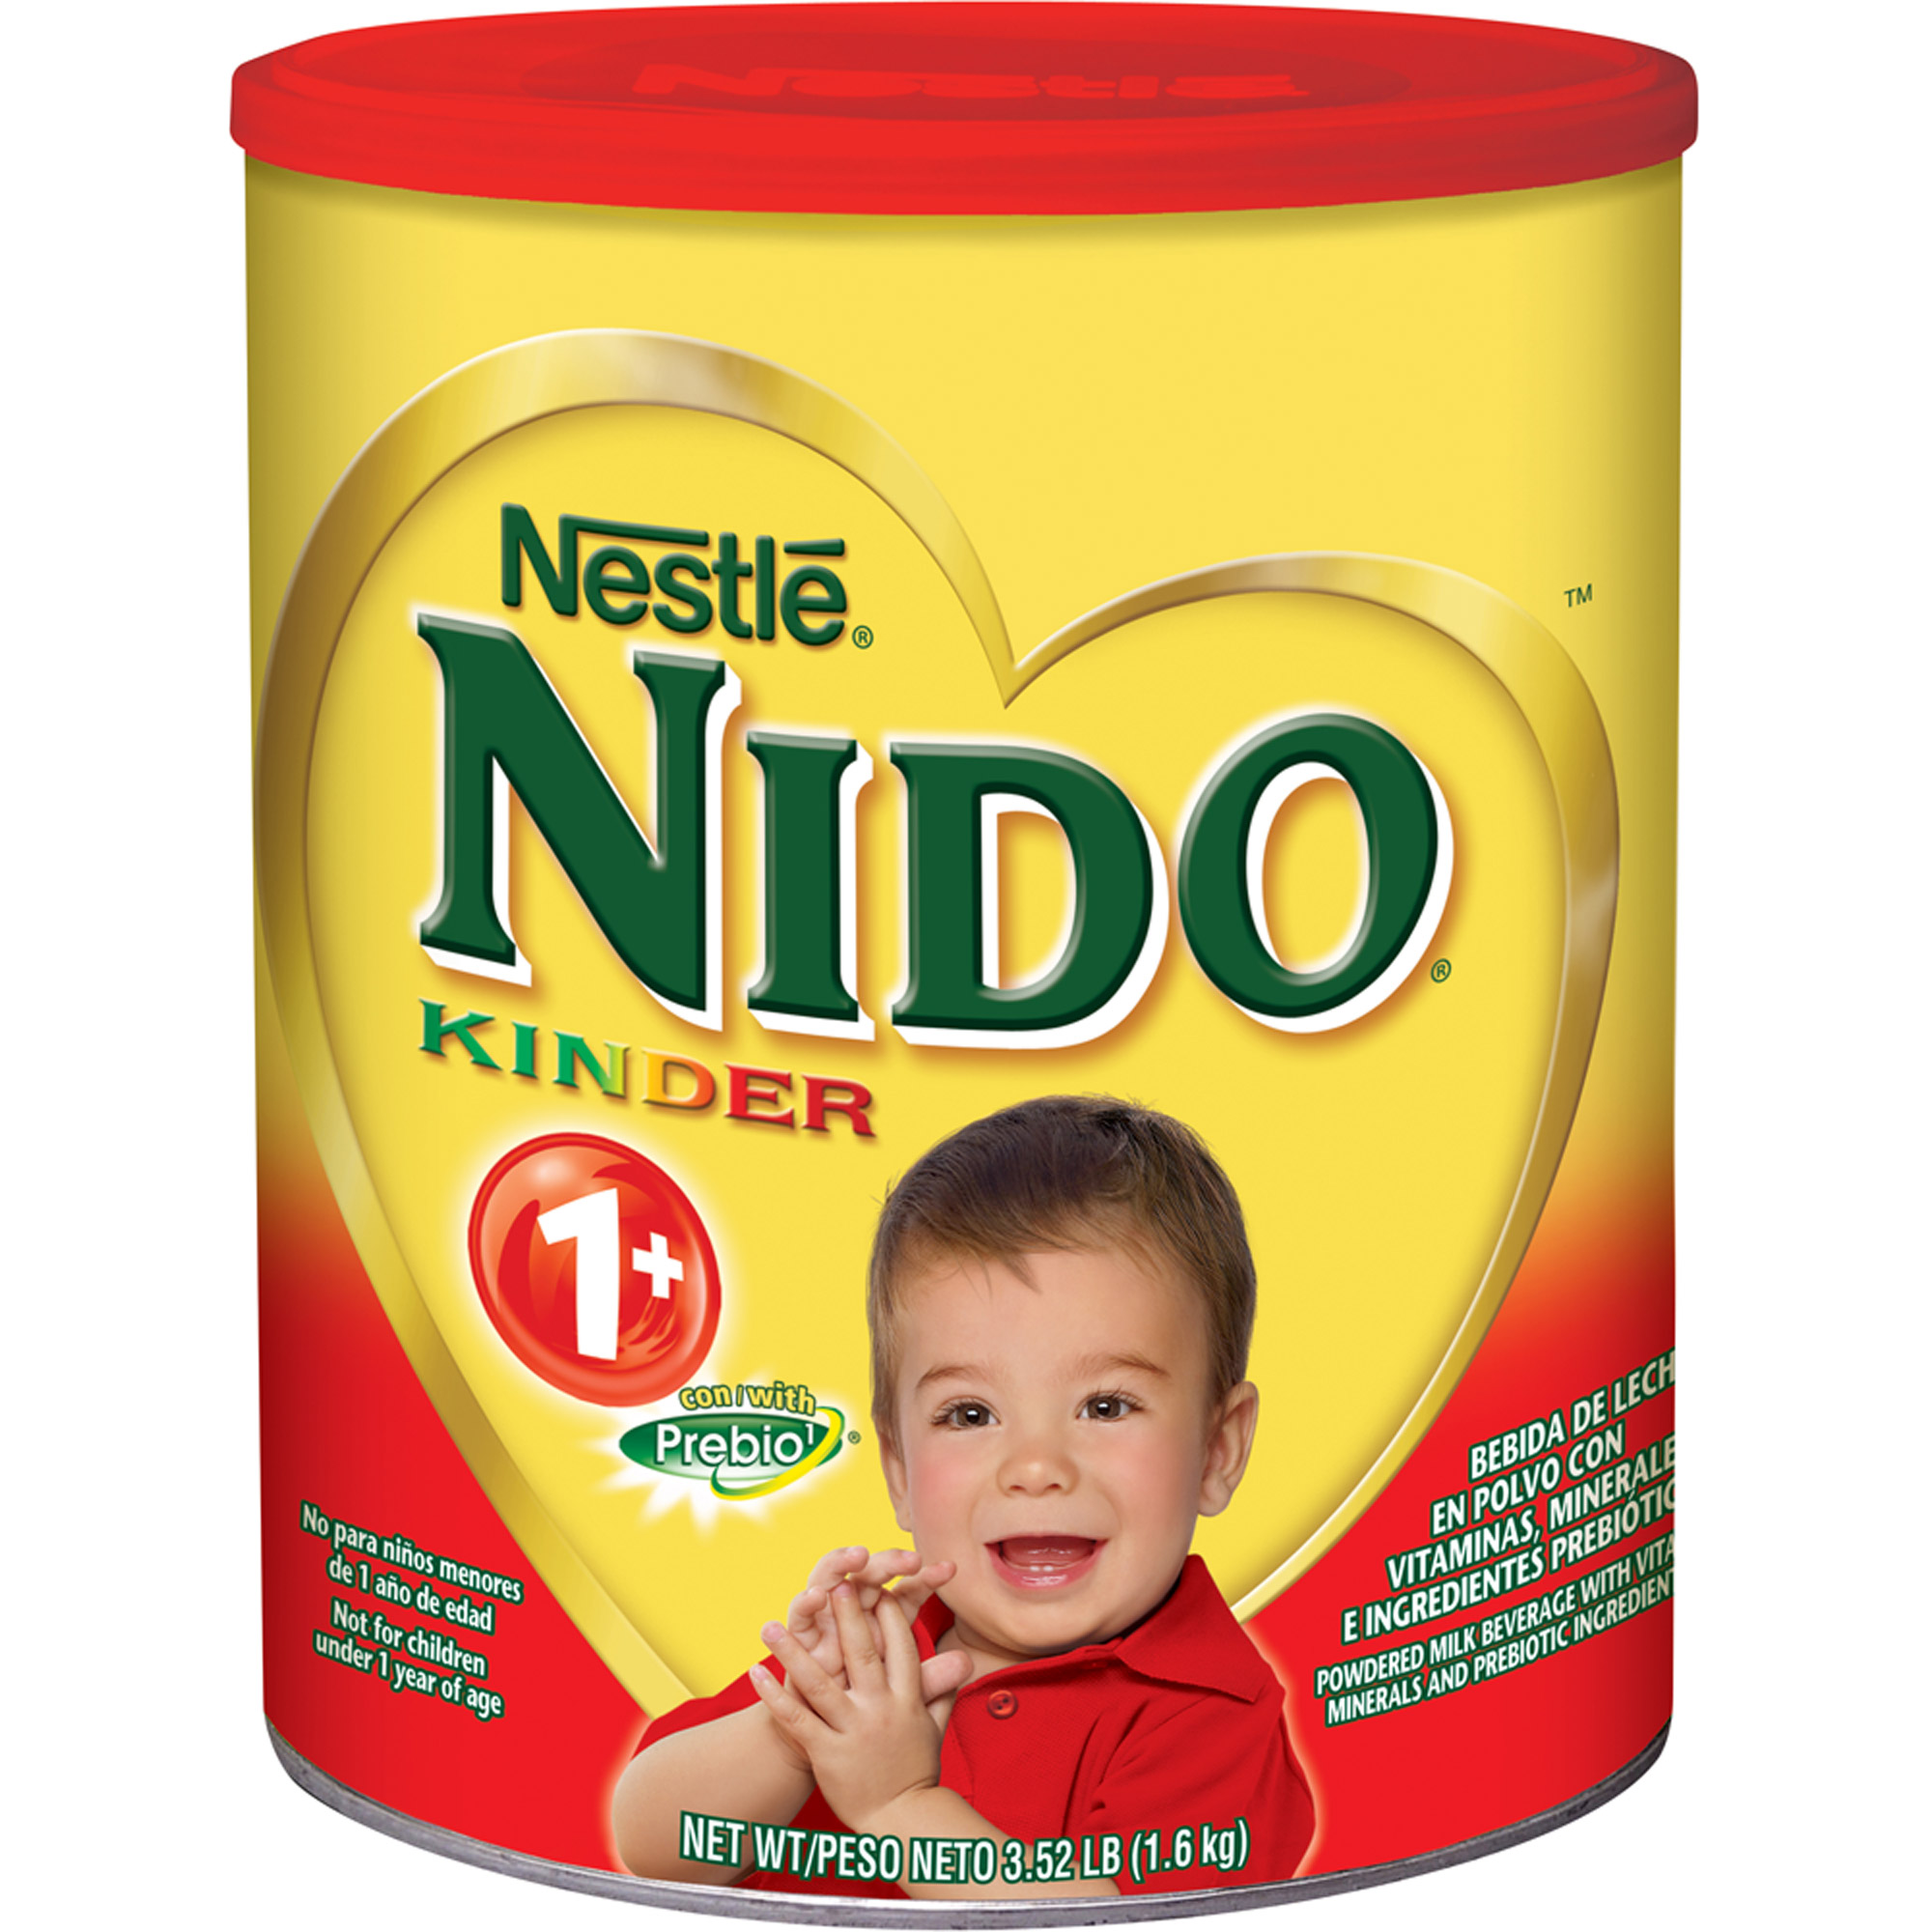 Nestle Nido Kinder 1  Powdered Milk Beverage, 3.52 lbs